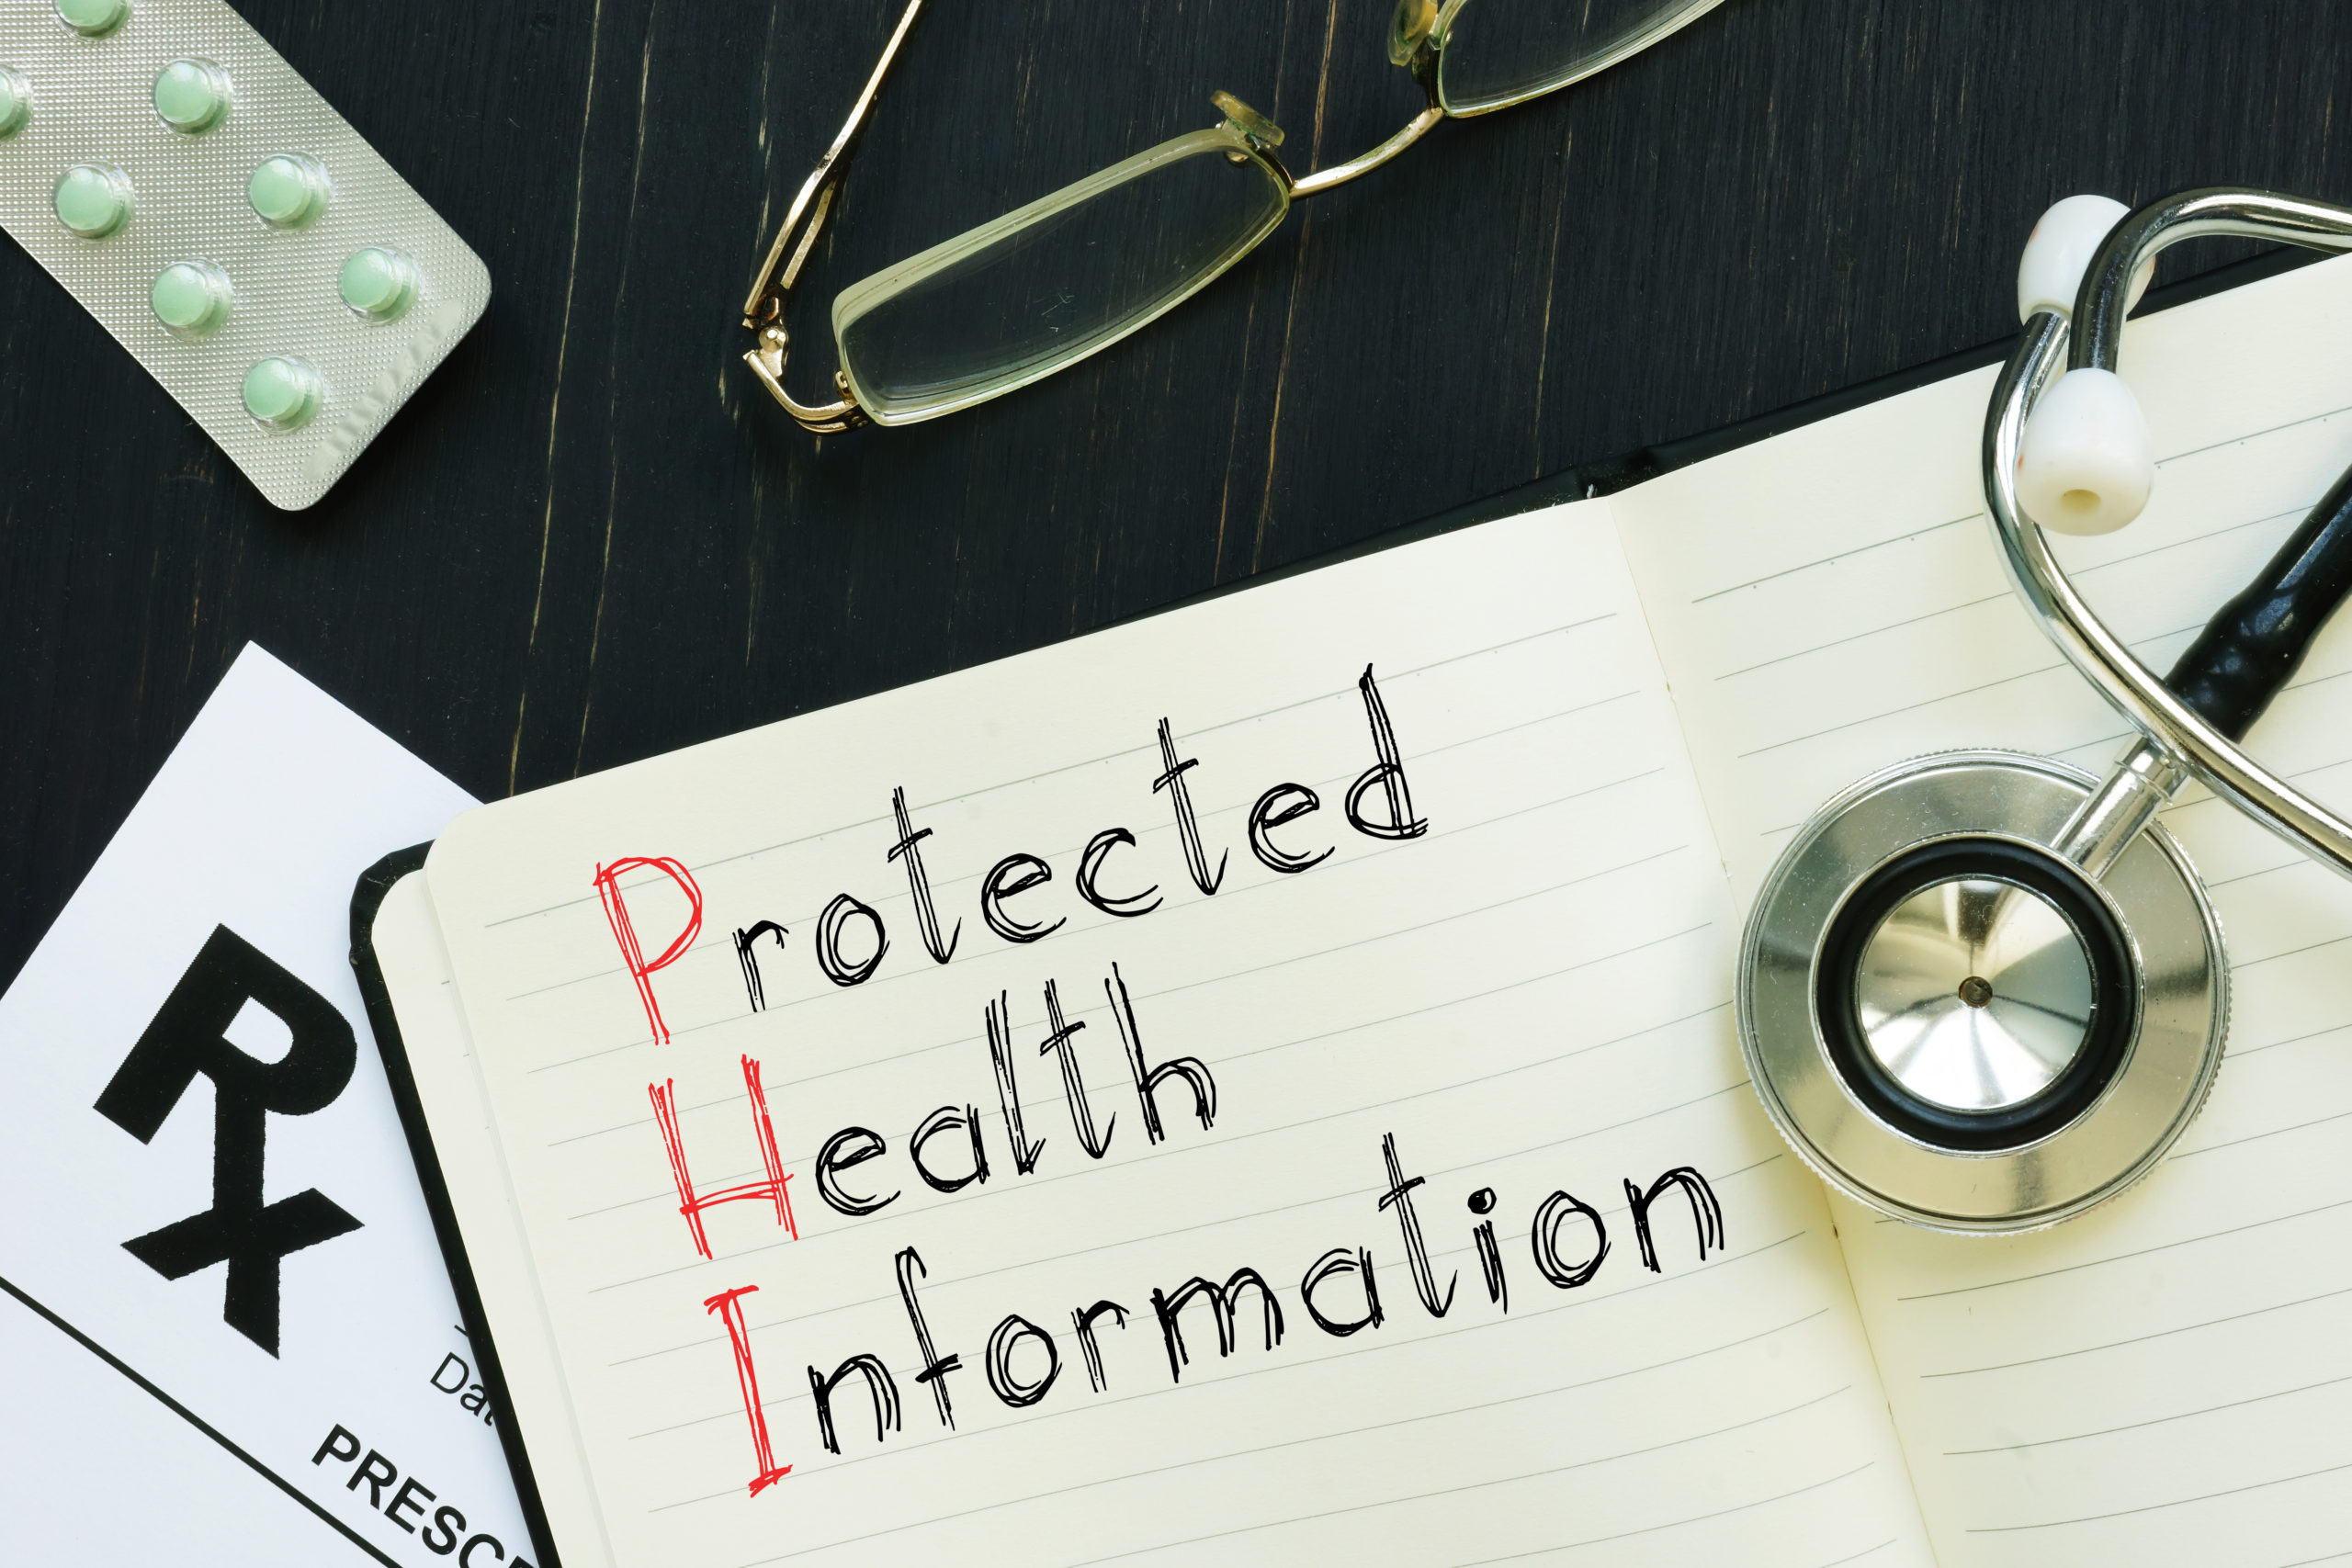 Protected Health Information Phi Is Shown On The Conceptual Business Photo